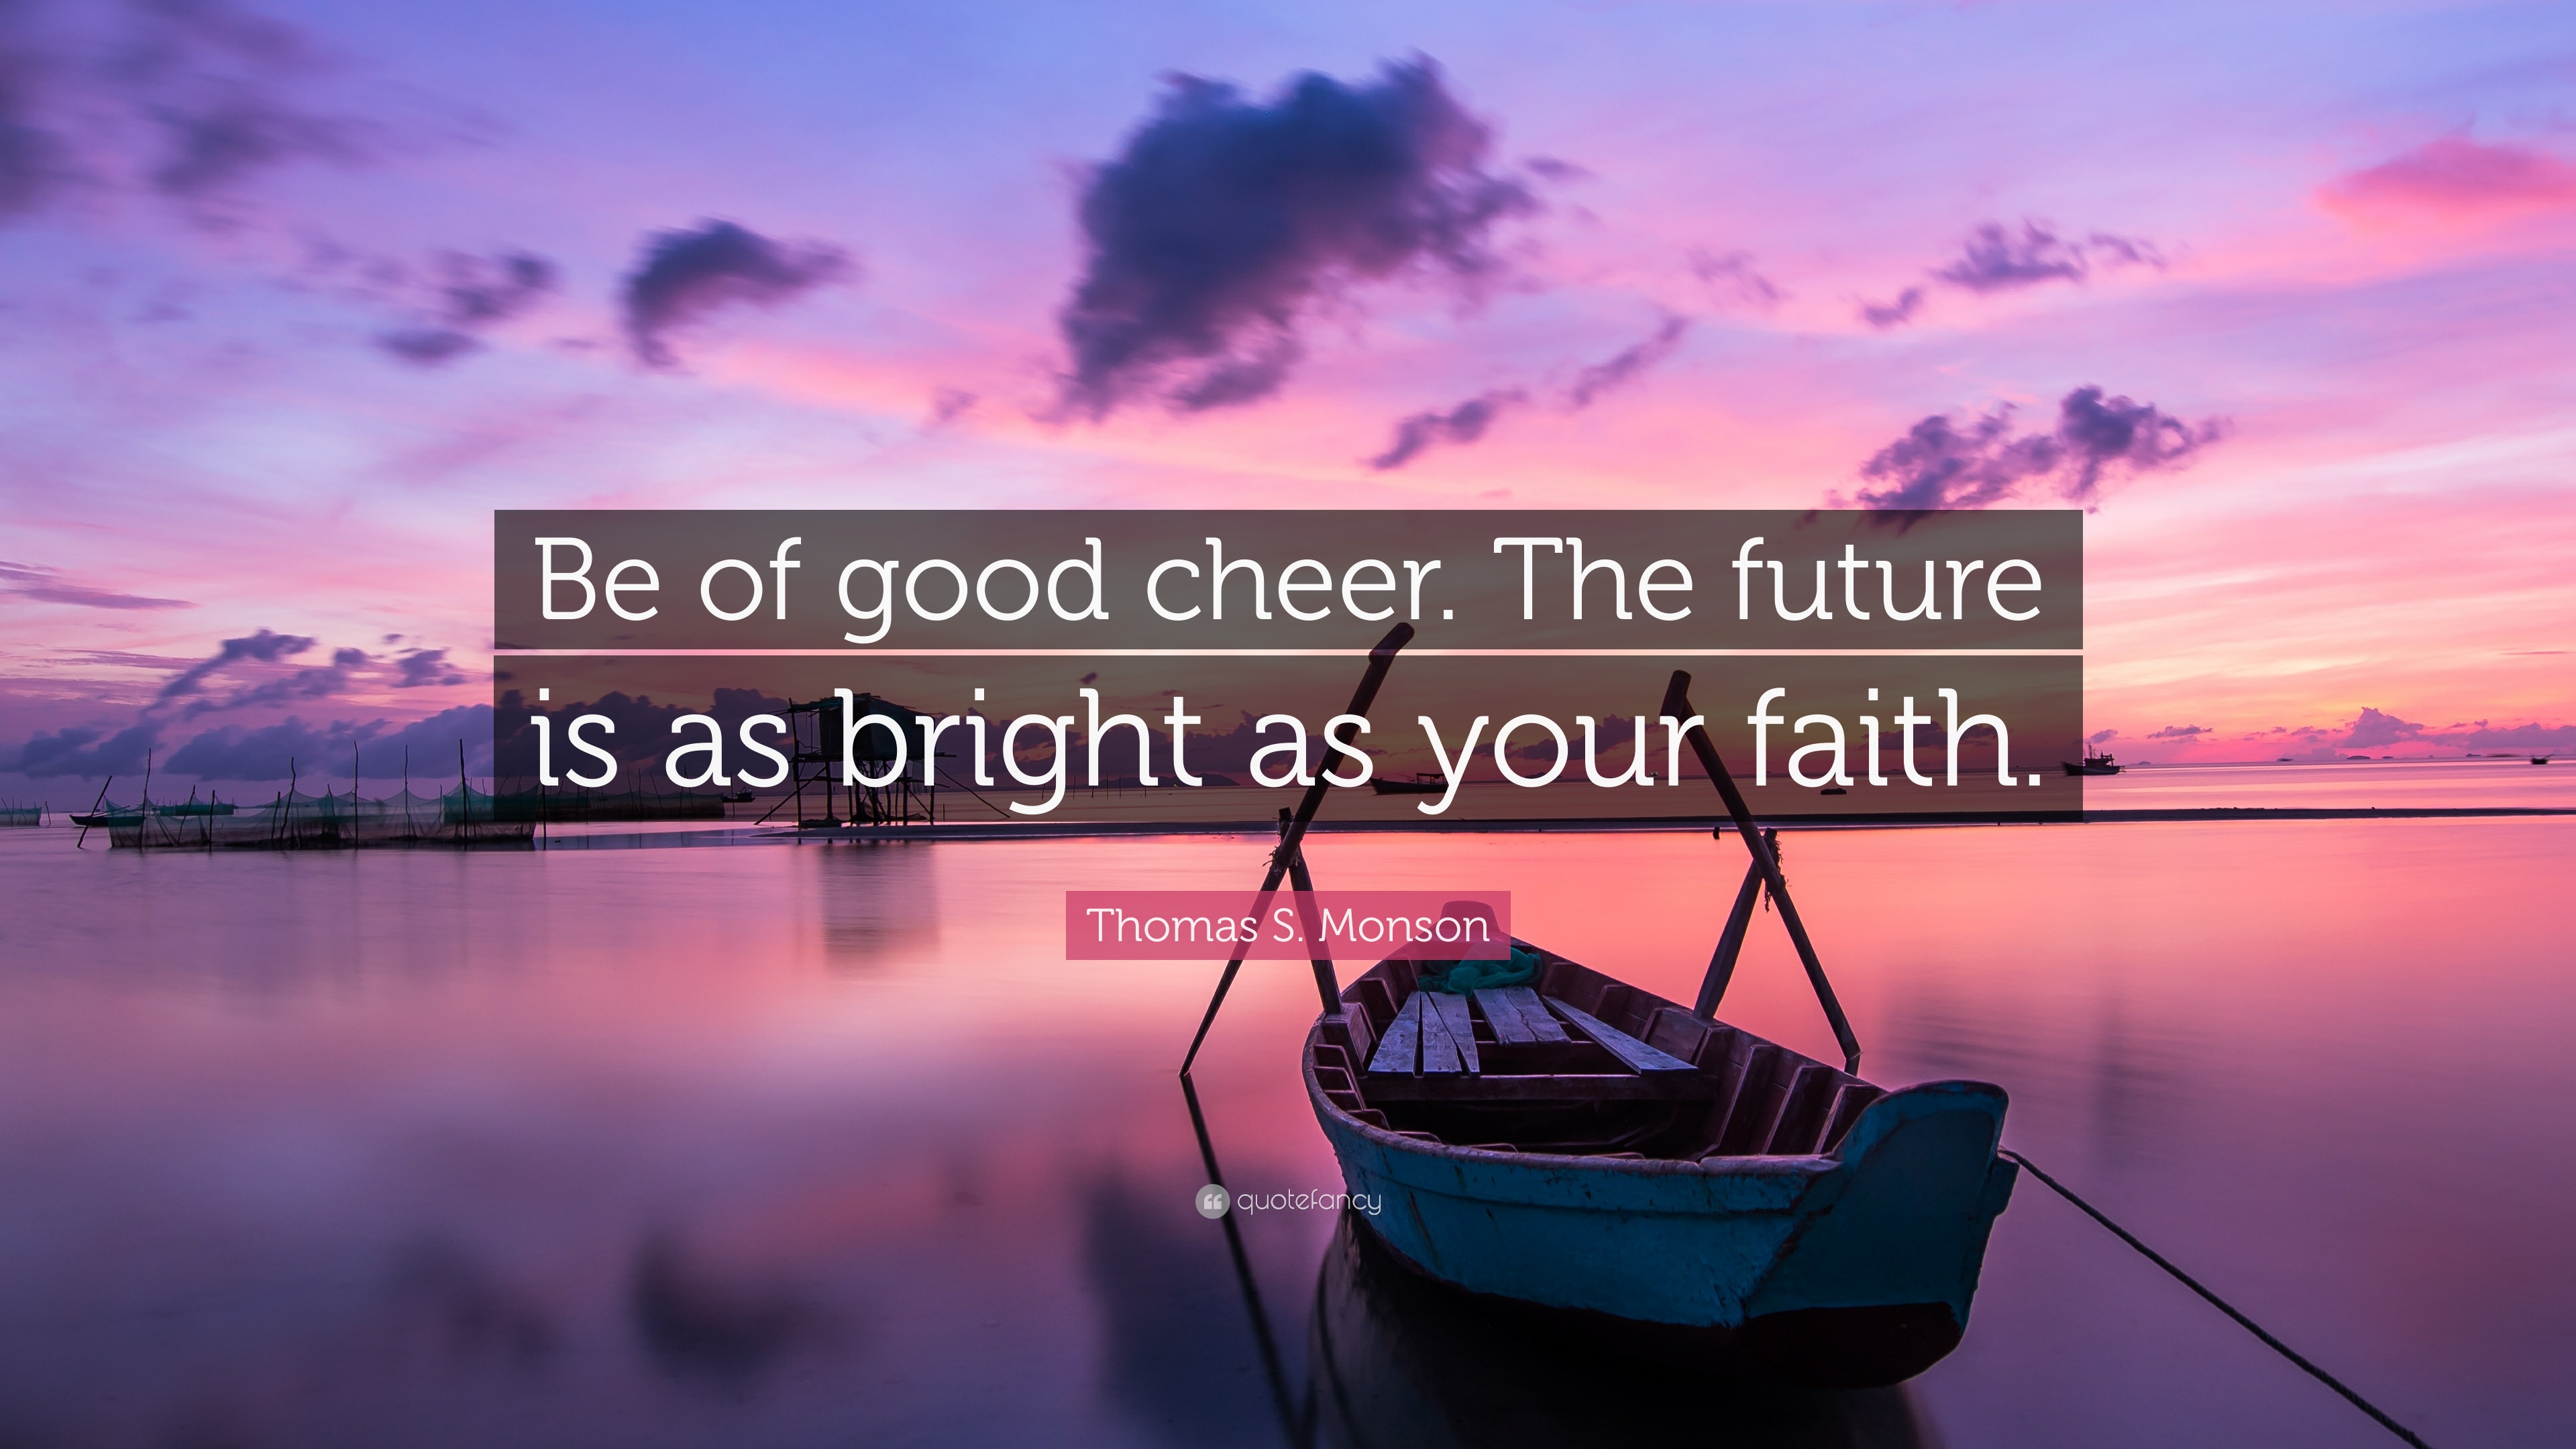 Thomas S Monson Quote Be Of Good Cheer The Future Is As Bright